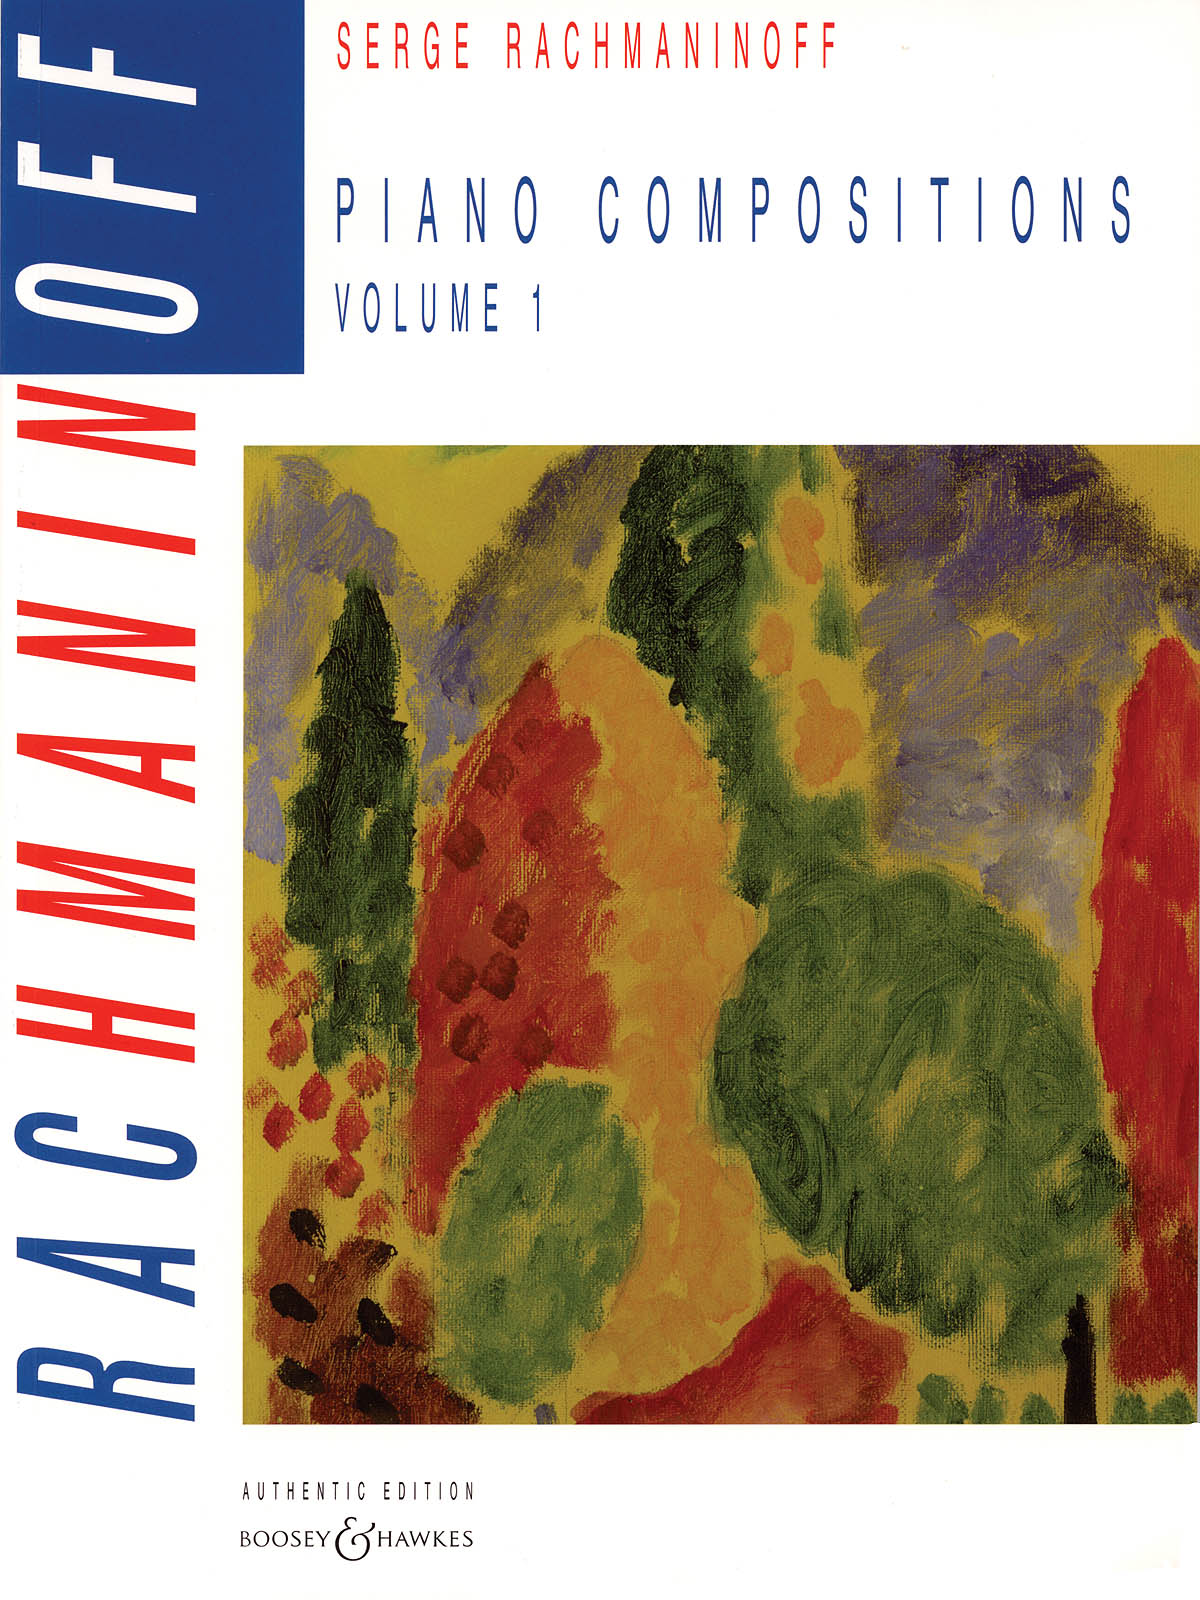 Rachmaninoff: Piano Compositions - Volume 1